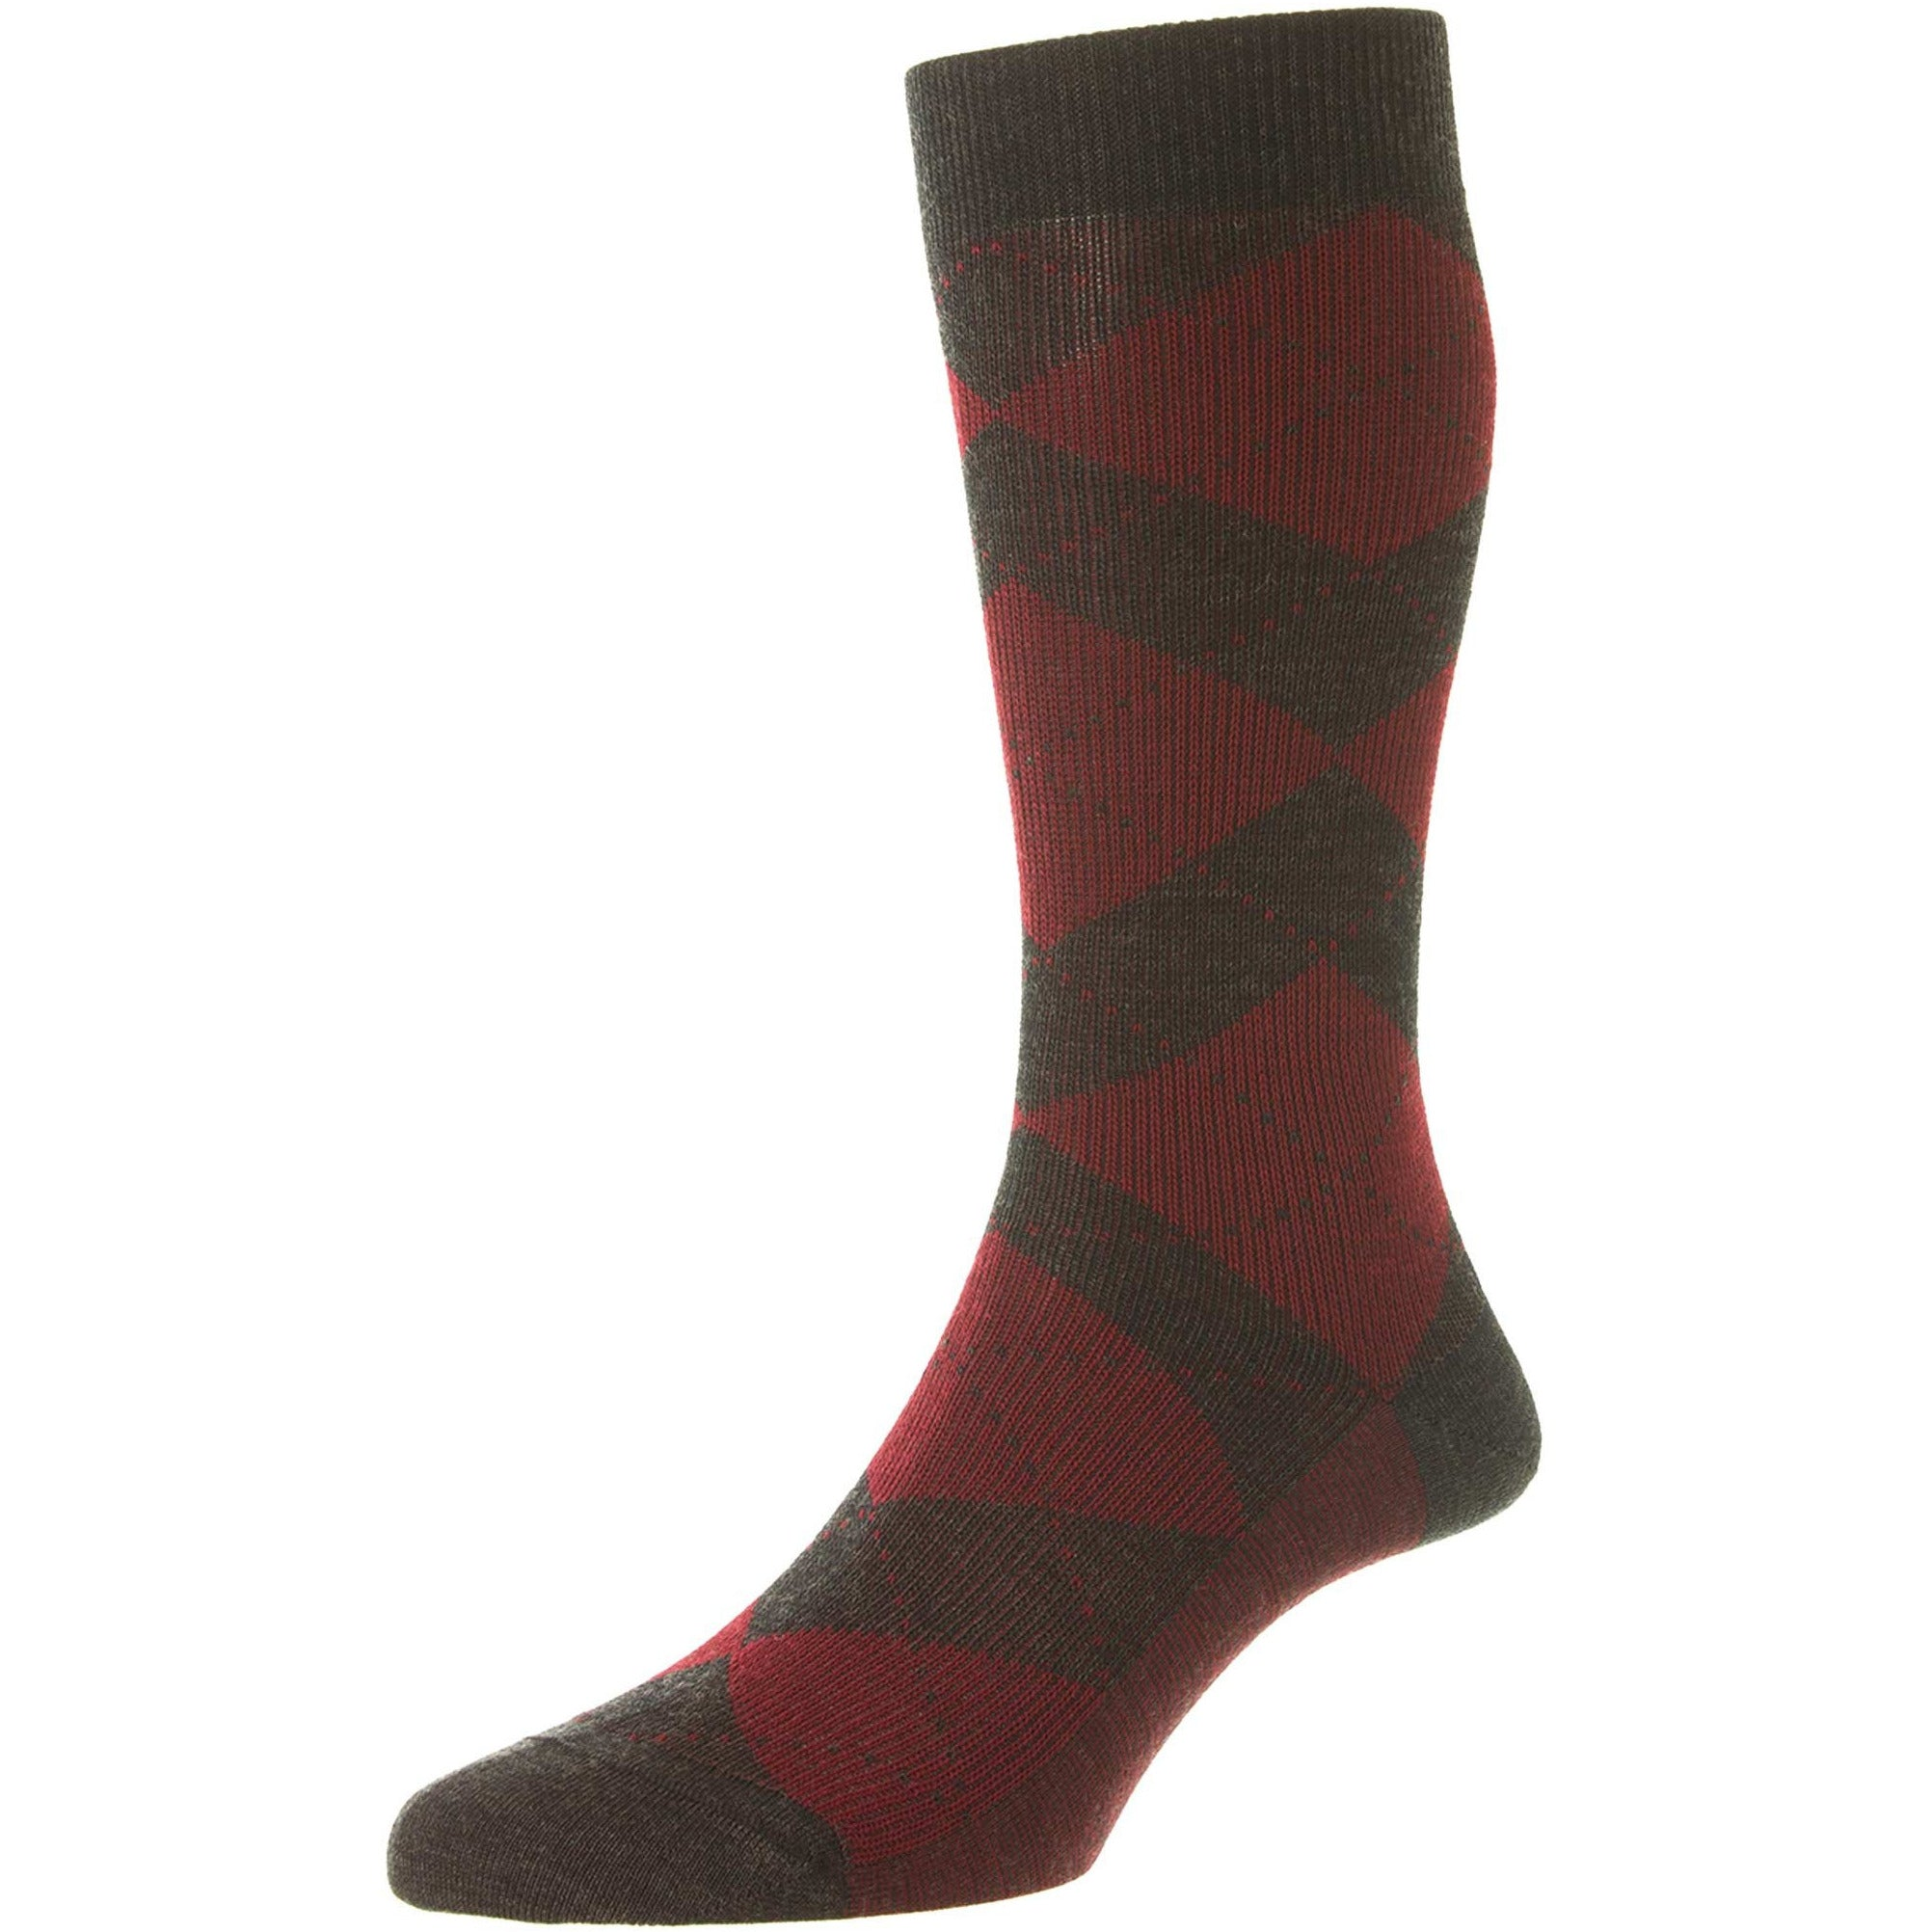 Abdale Argyle Rib Merino Wool Dress Socks